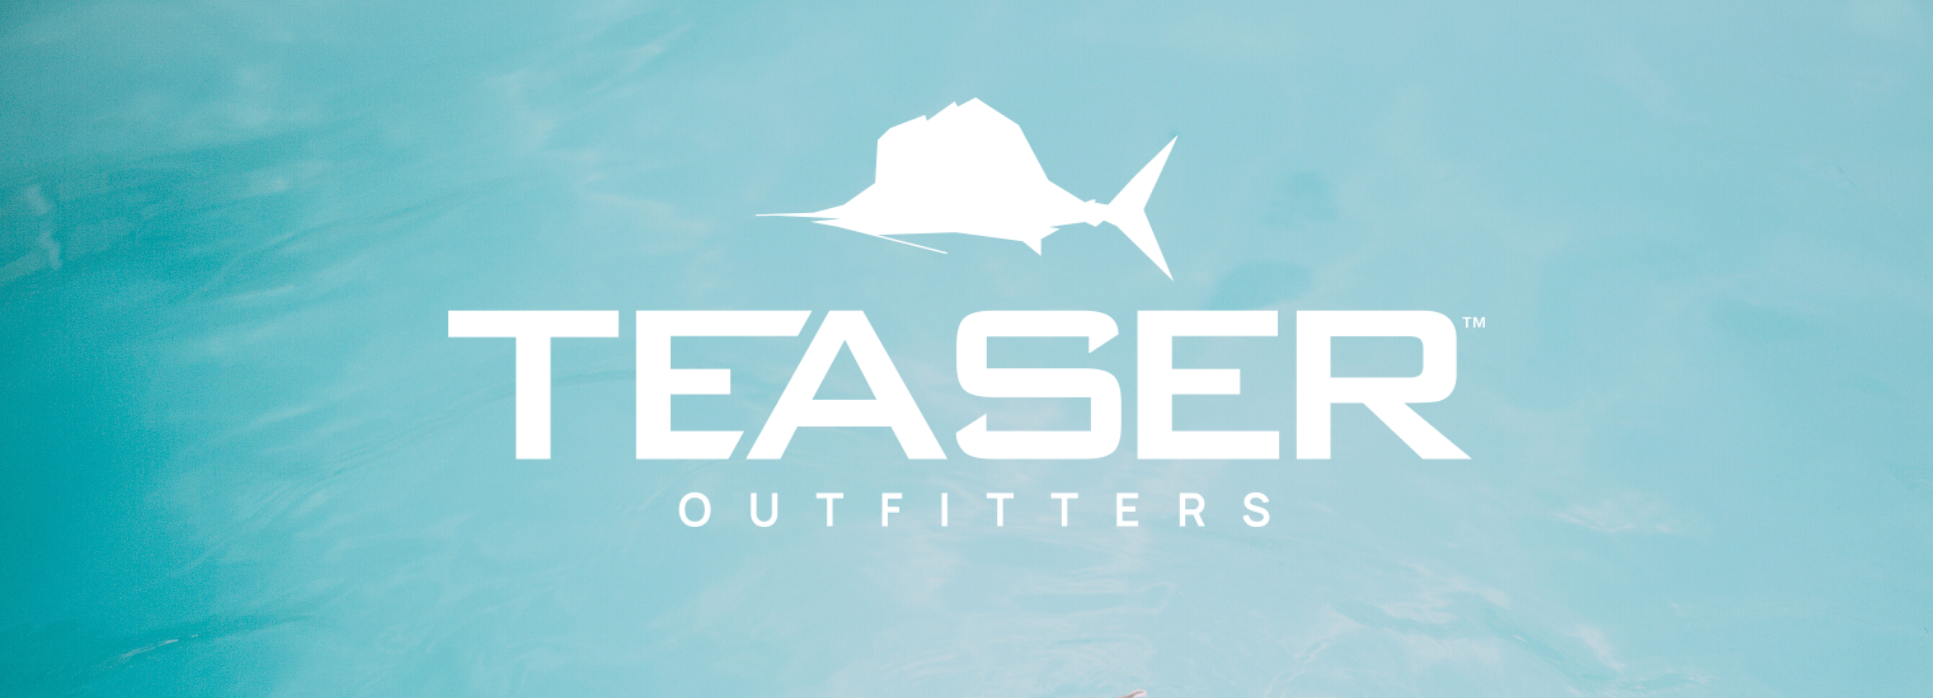 Teaser Outfitters